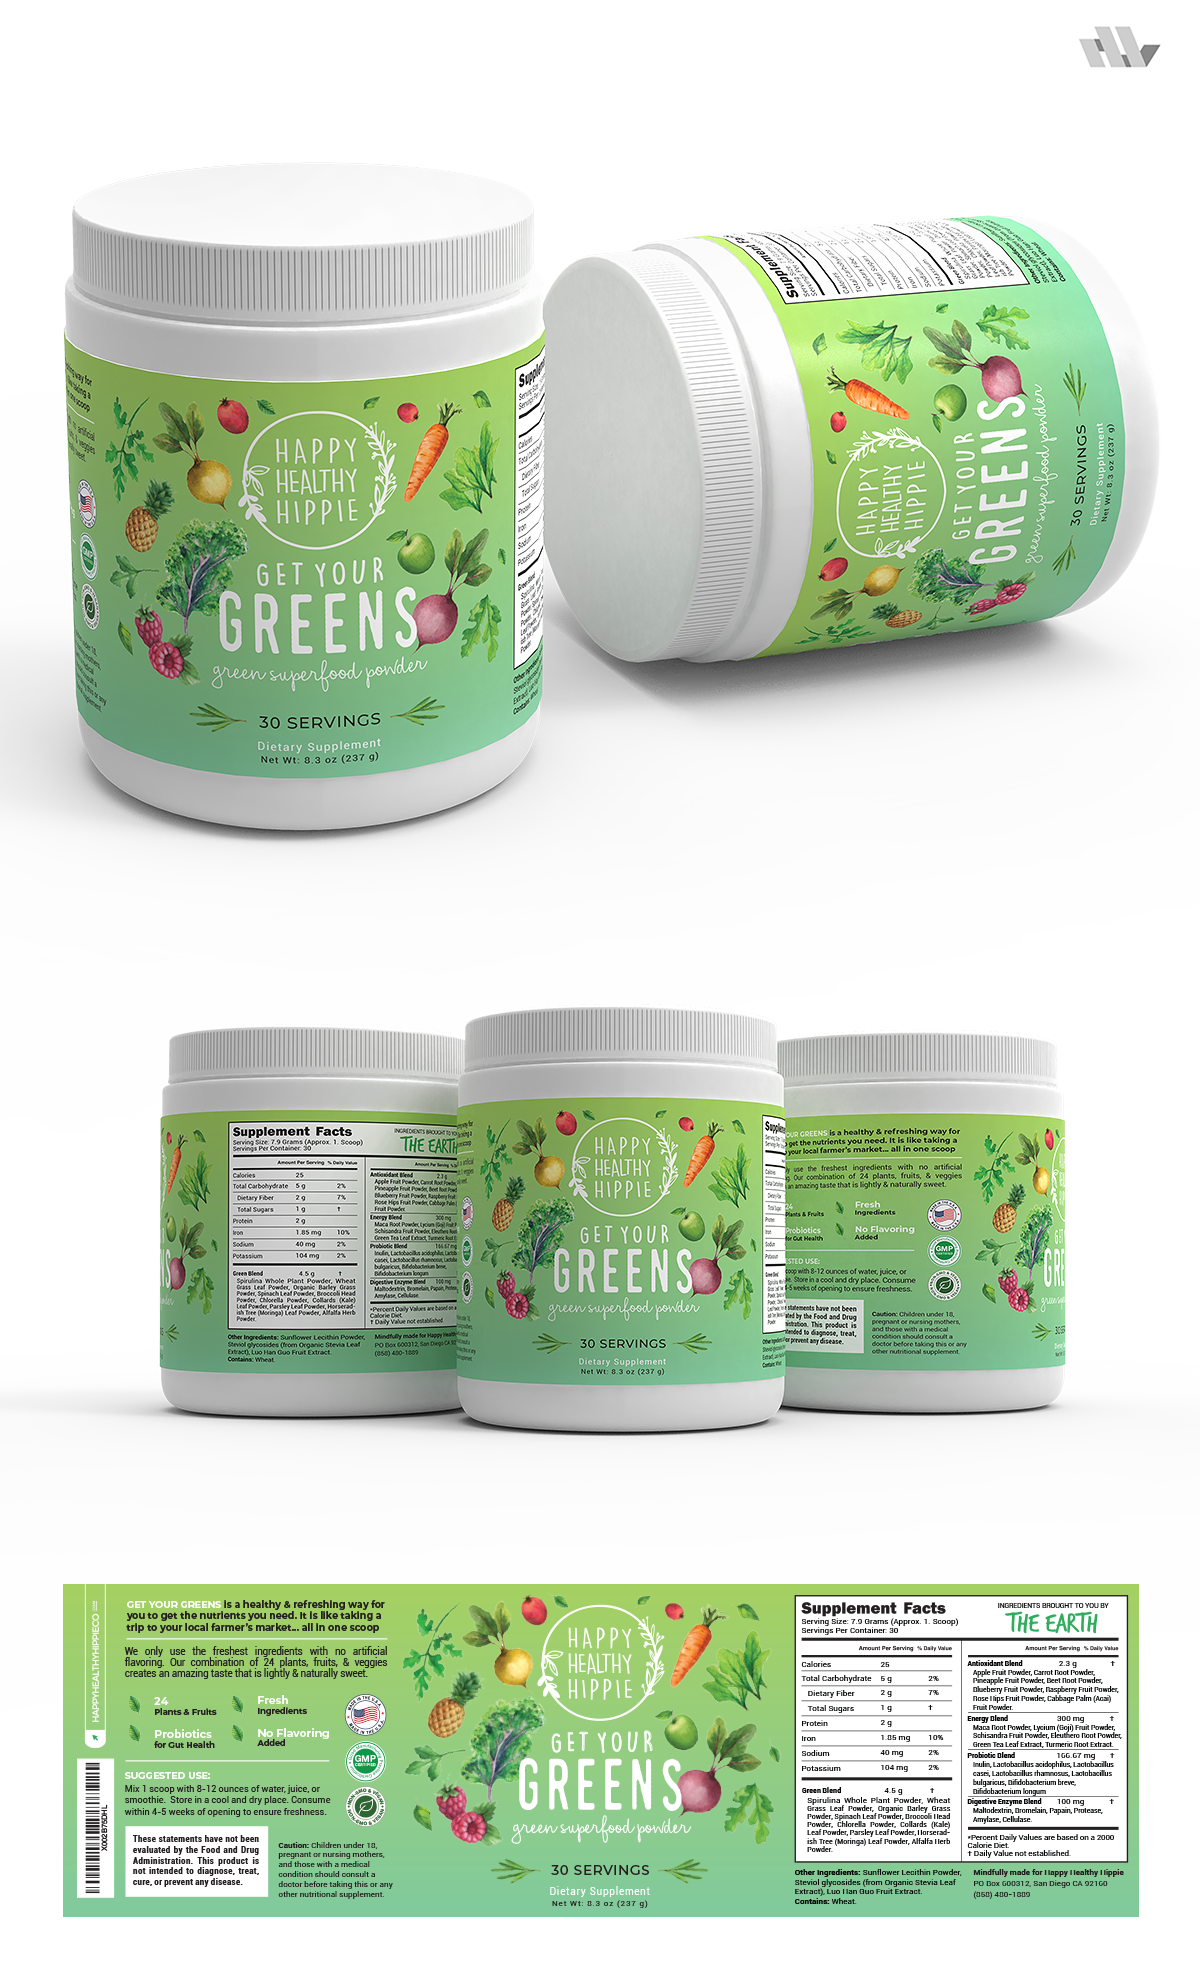 Get your greens - label redesign